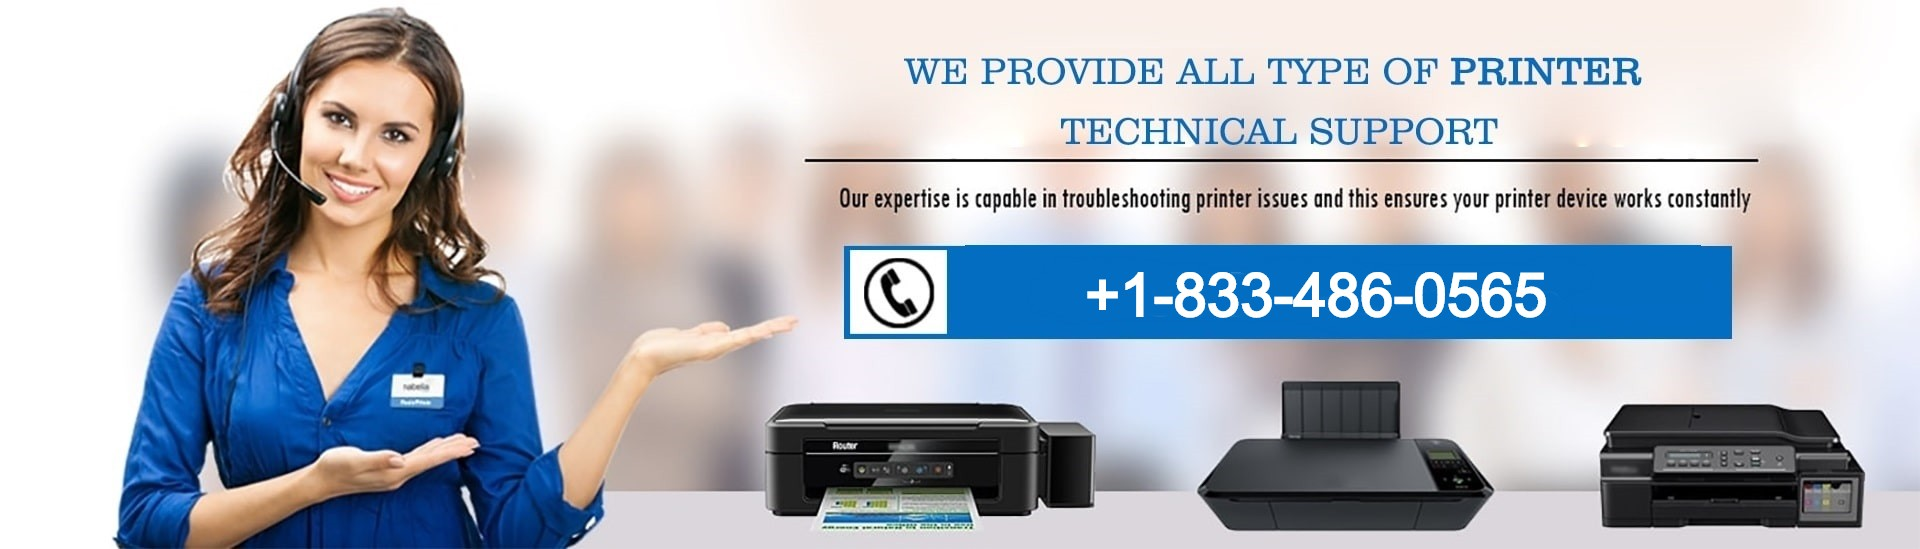 Printer Support Number USA +1-888-883-9839| HP Support